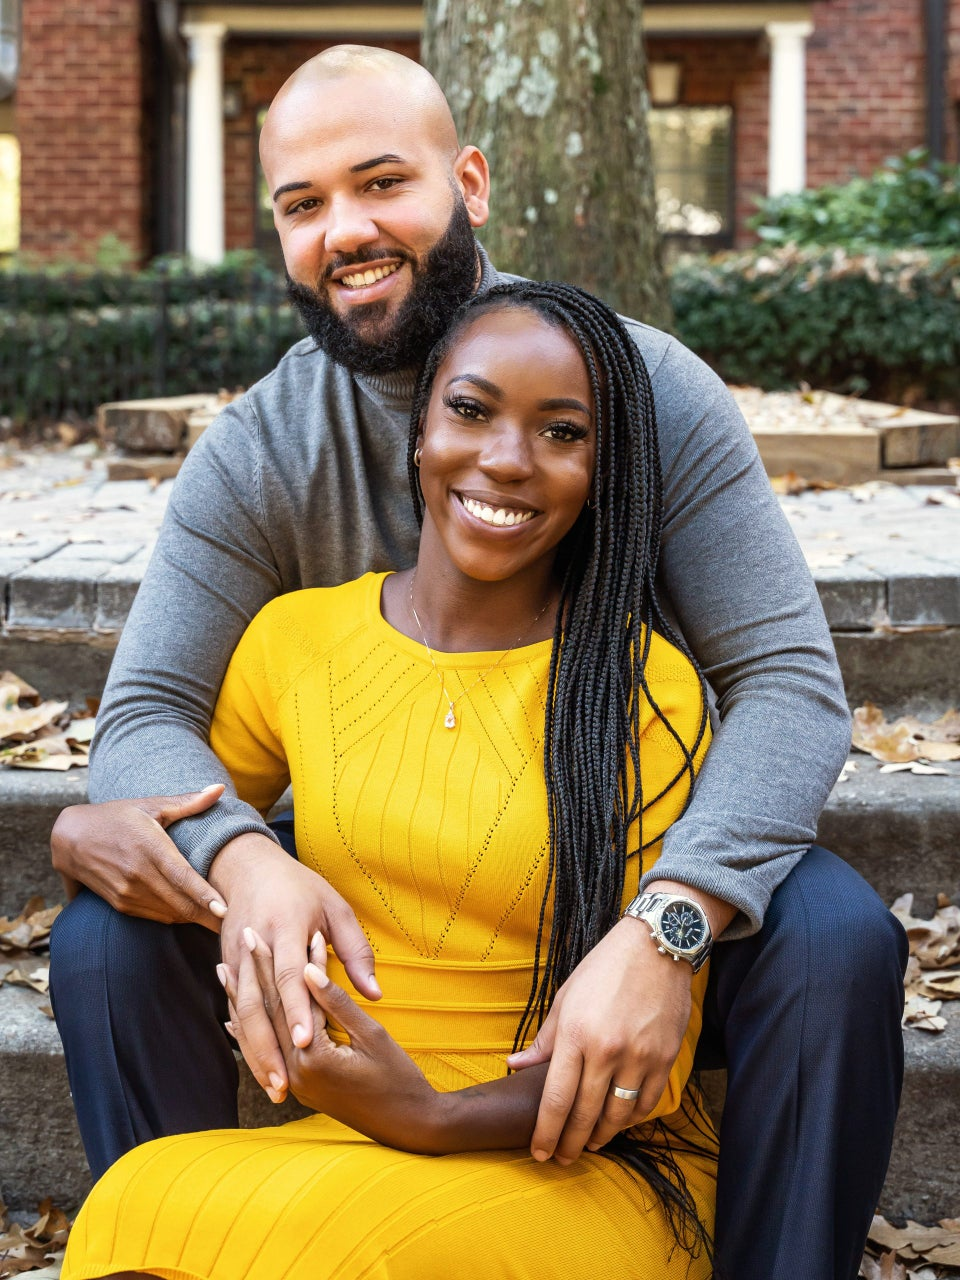 Vincent And Briana Of 'Married At First Sight' Explain The Perks Of Marrying A Stranger And Finding Love On TV